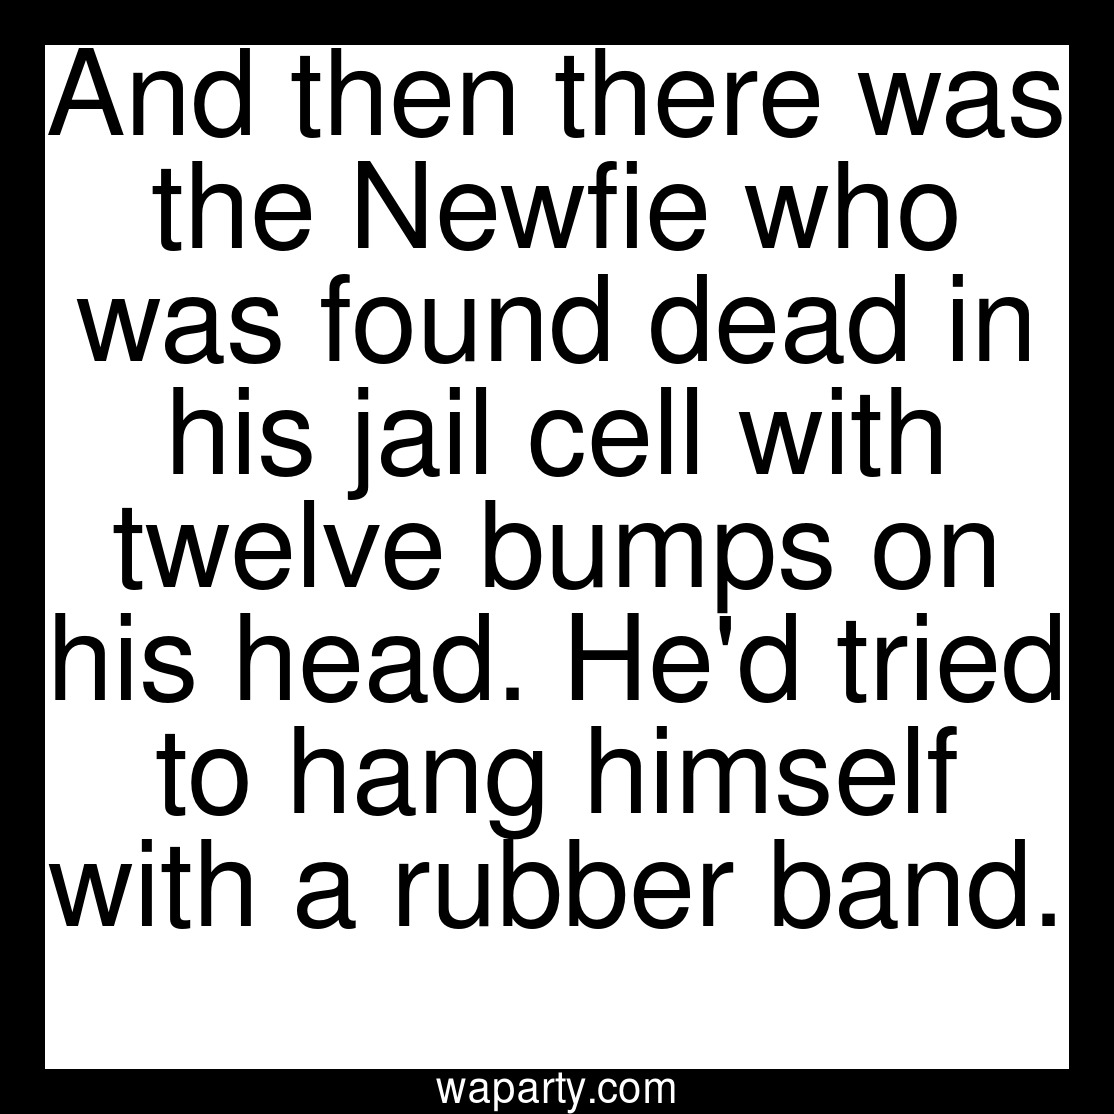 And then there was the Newfie who was found dead in his jail cell with twelve bumps on his head. Hed tried to hang himself with a rubber band.